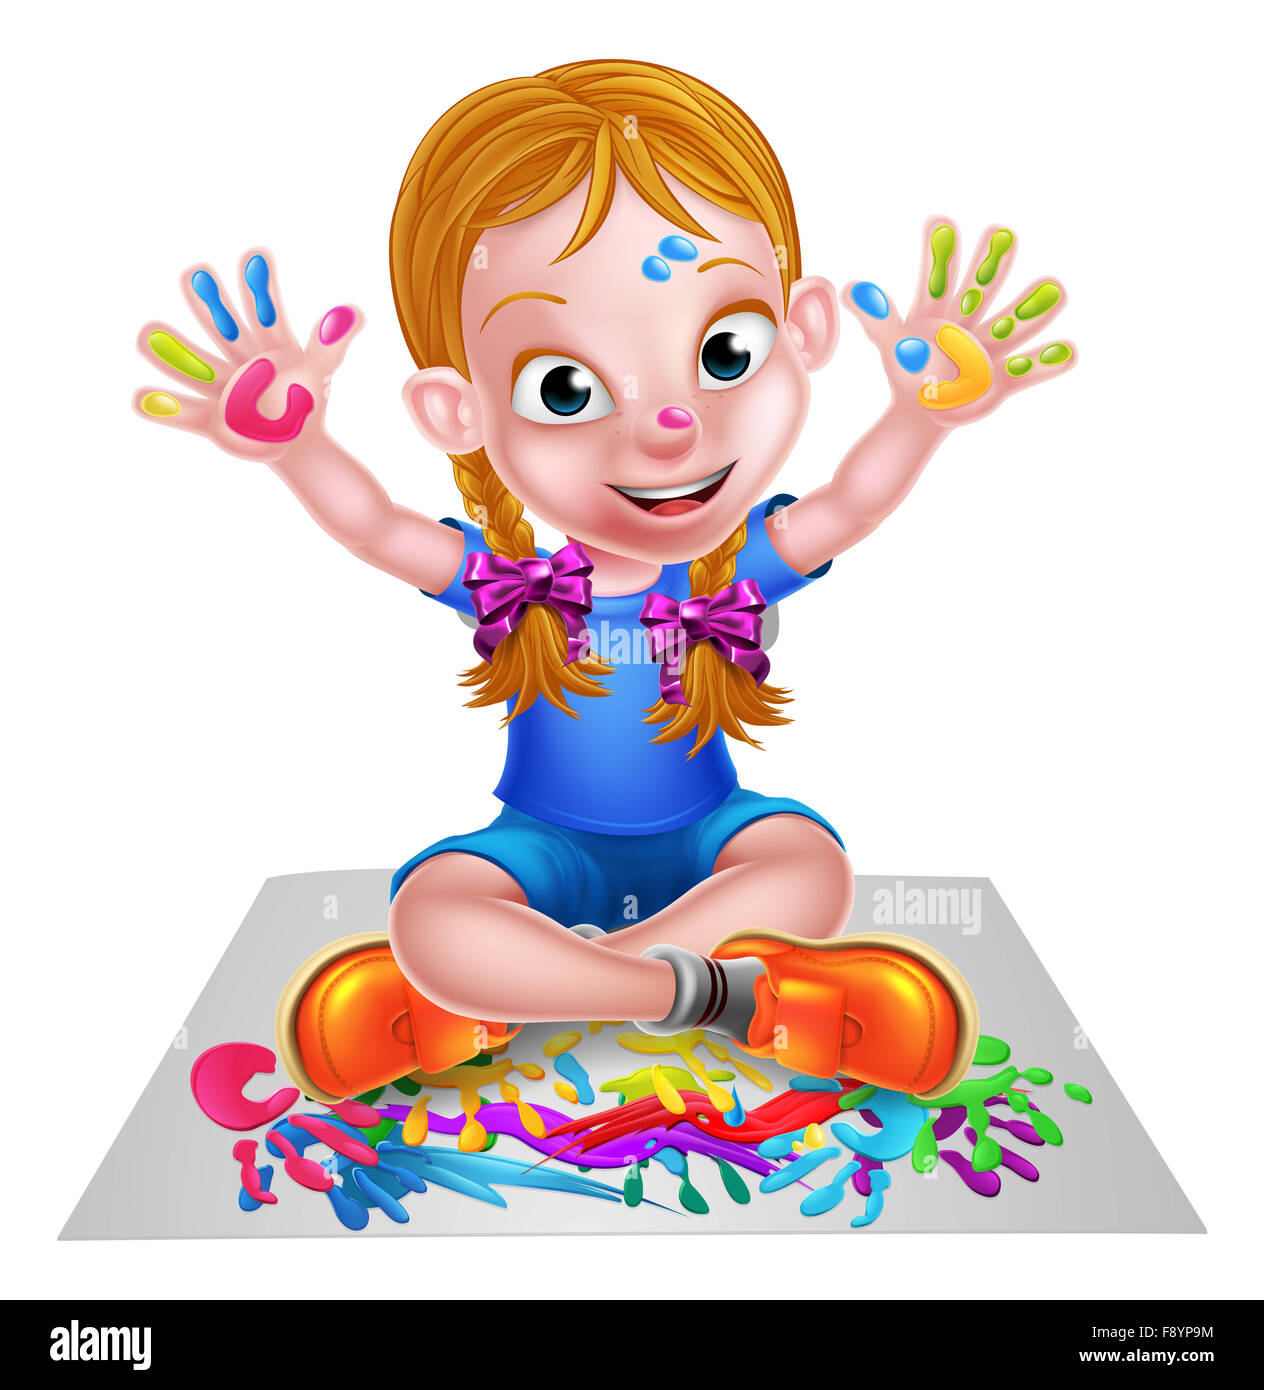 Messy Playroom: A Happy Cartoon Little Girl Enjoying Being Creative Having